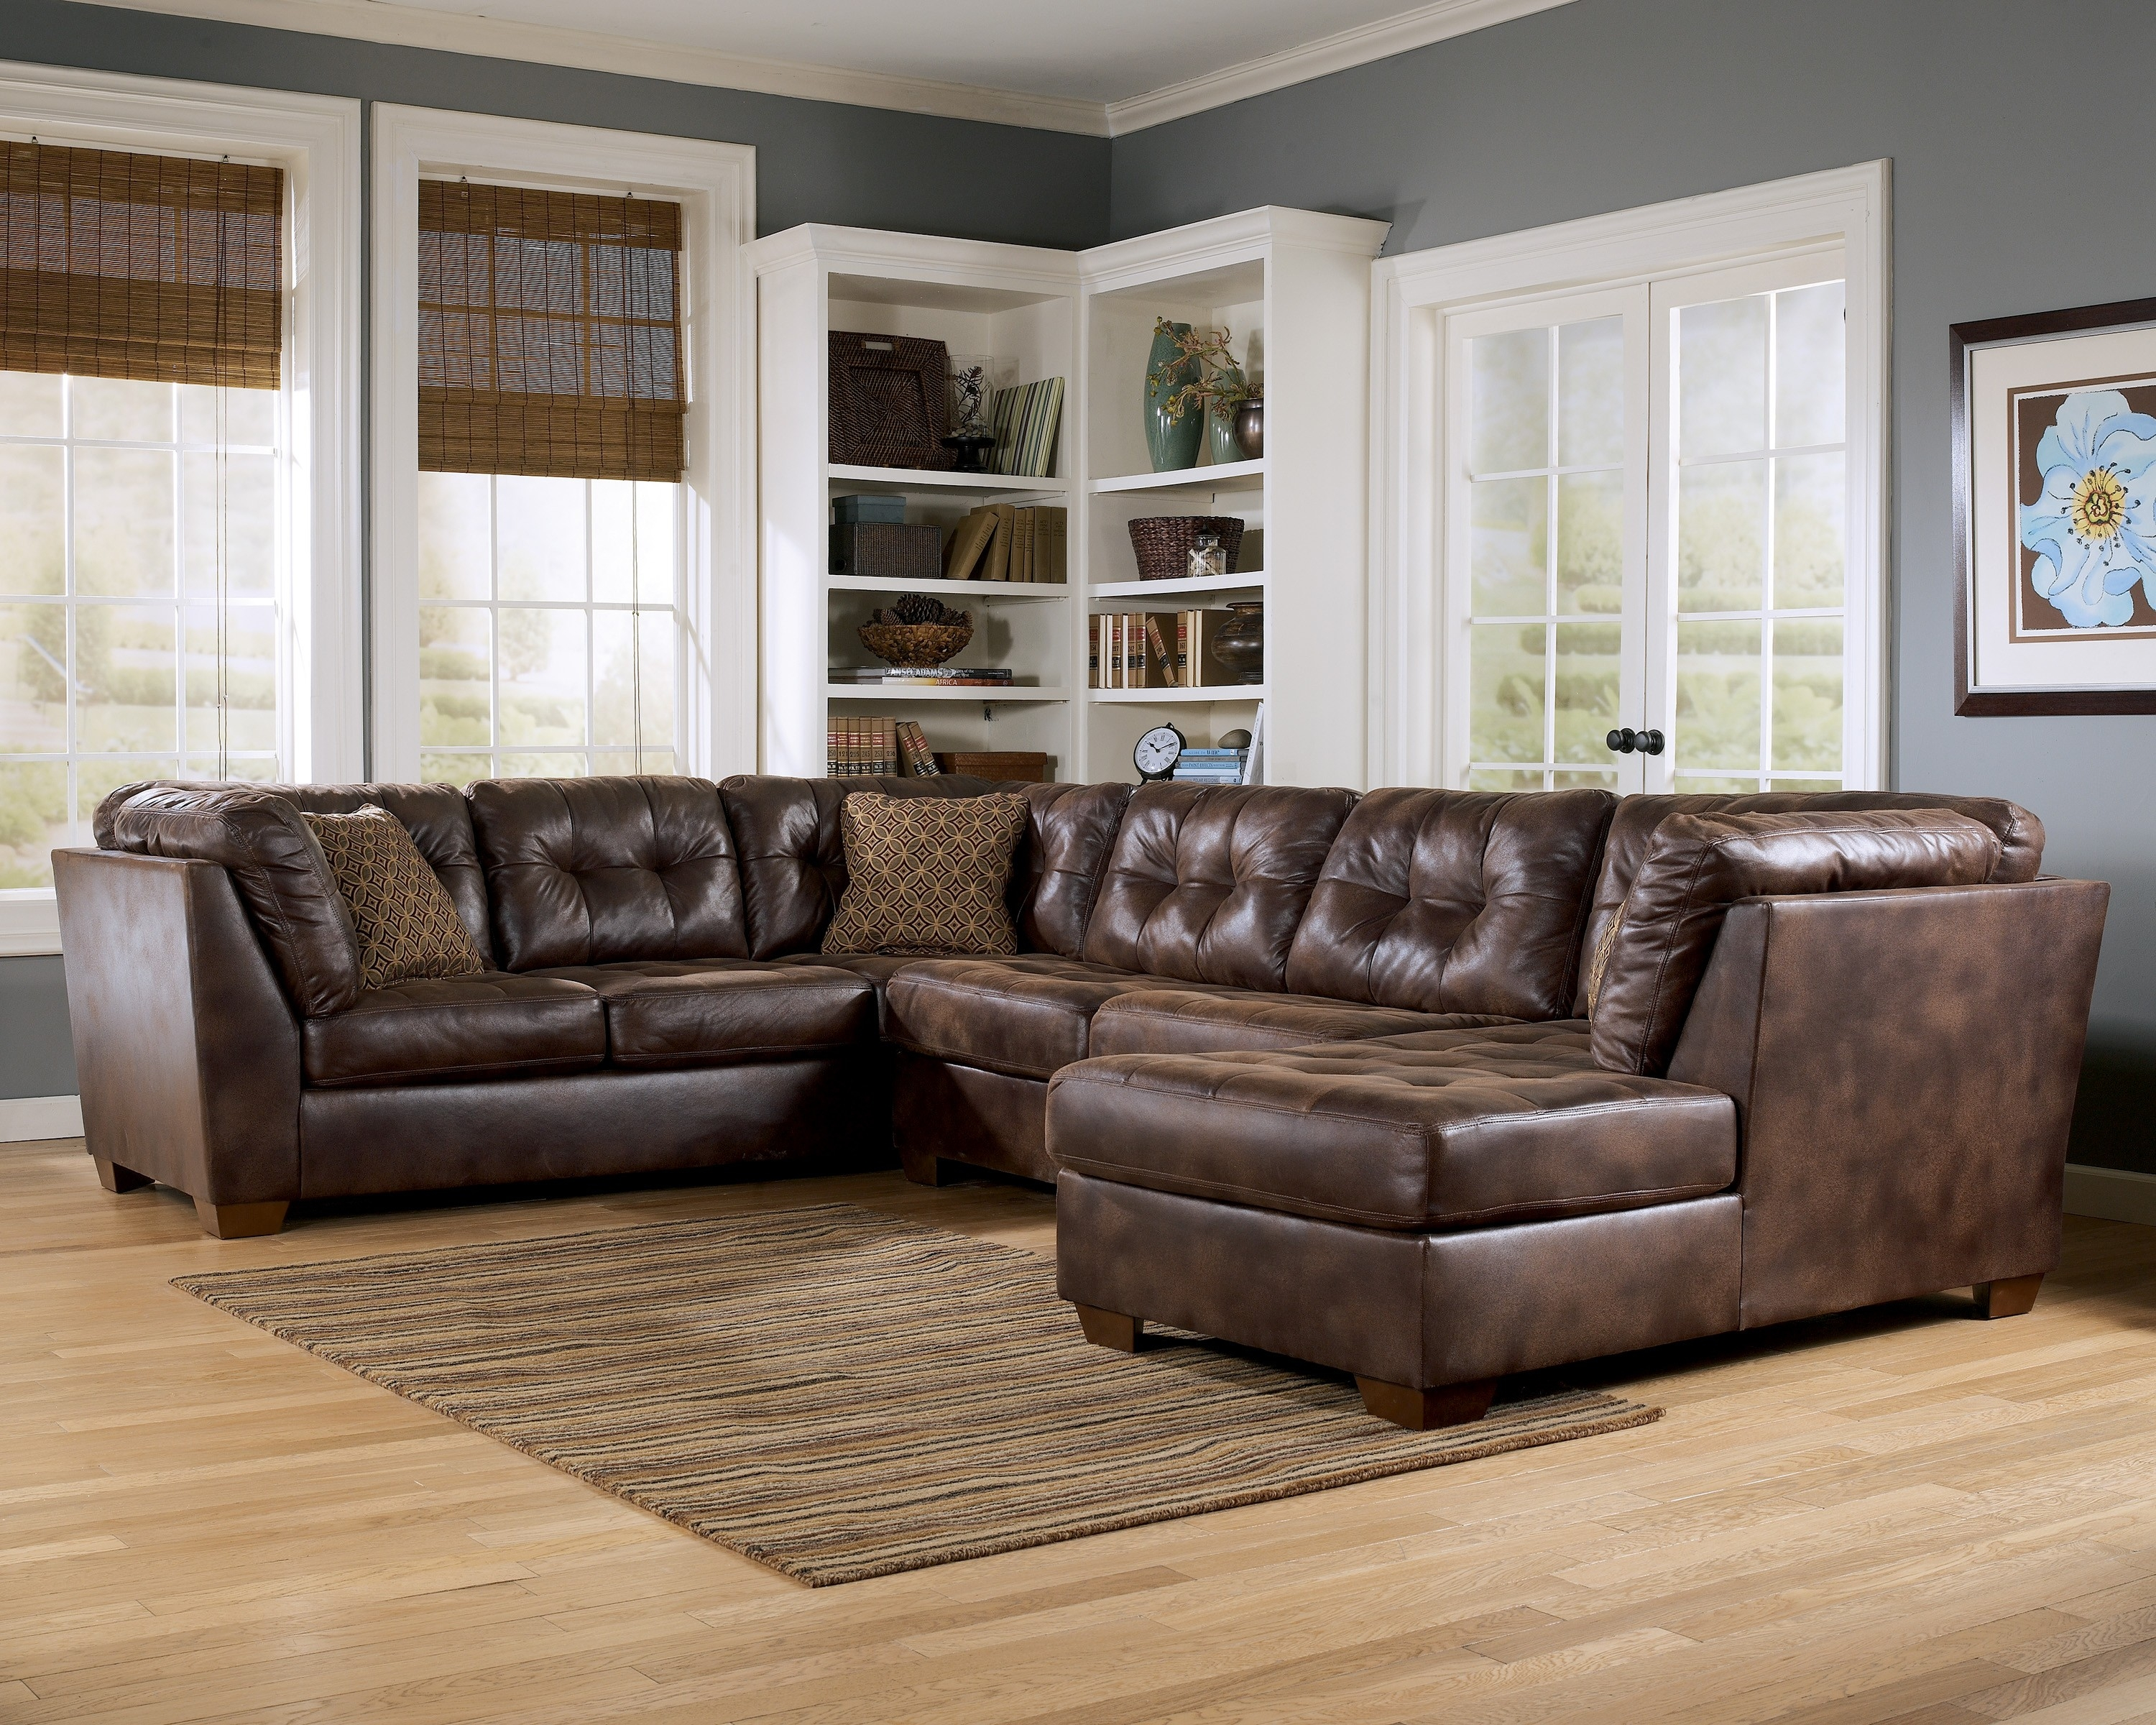 Cozy Sectional Sofas Cleanupflorida Throughout Cozy Sectional Sofas (#6 of 12)